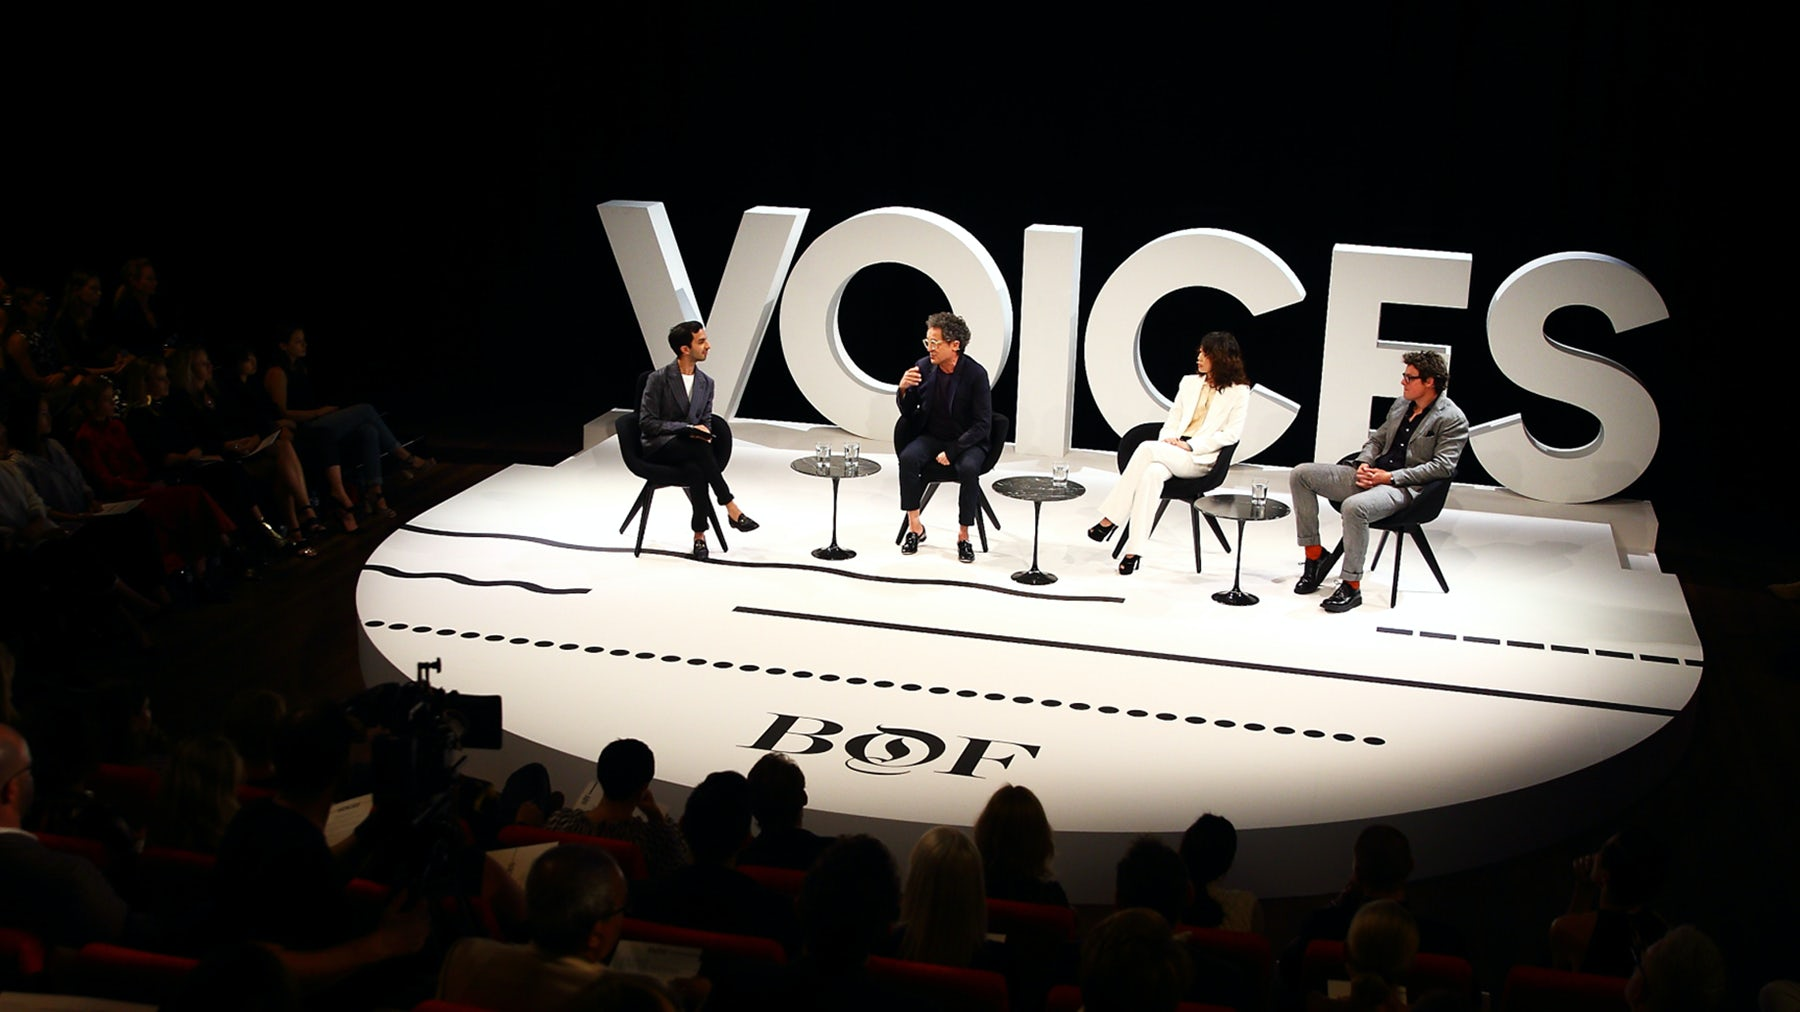 BoF Announces McKinsey & Company as Exclusive Knowledge Partner for VOICES